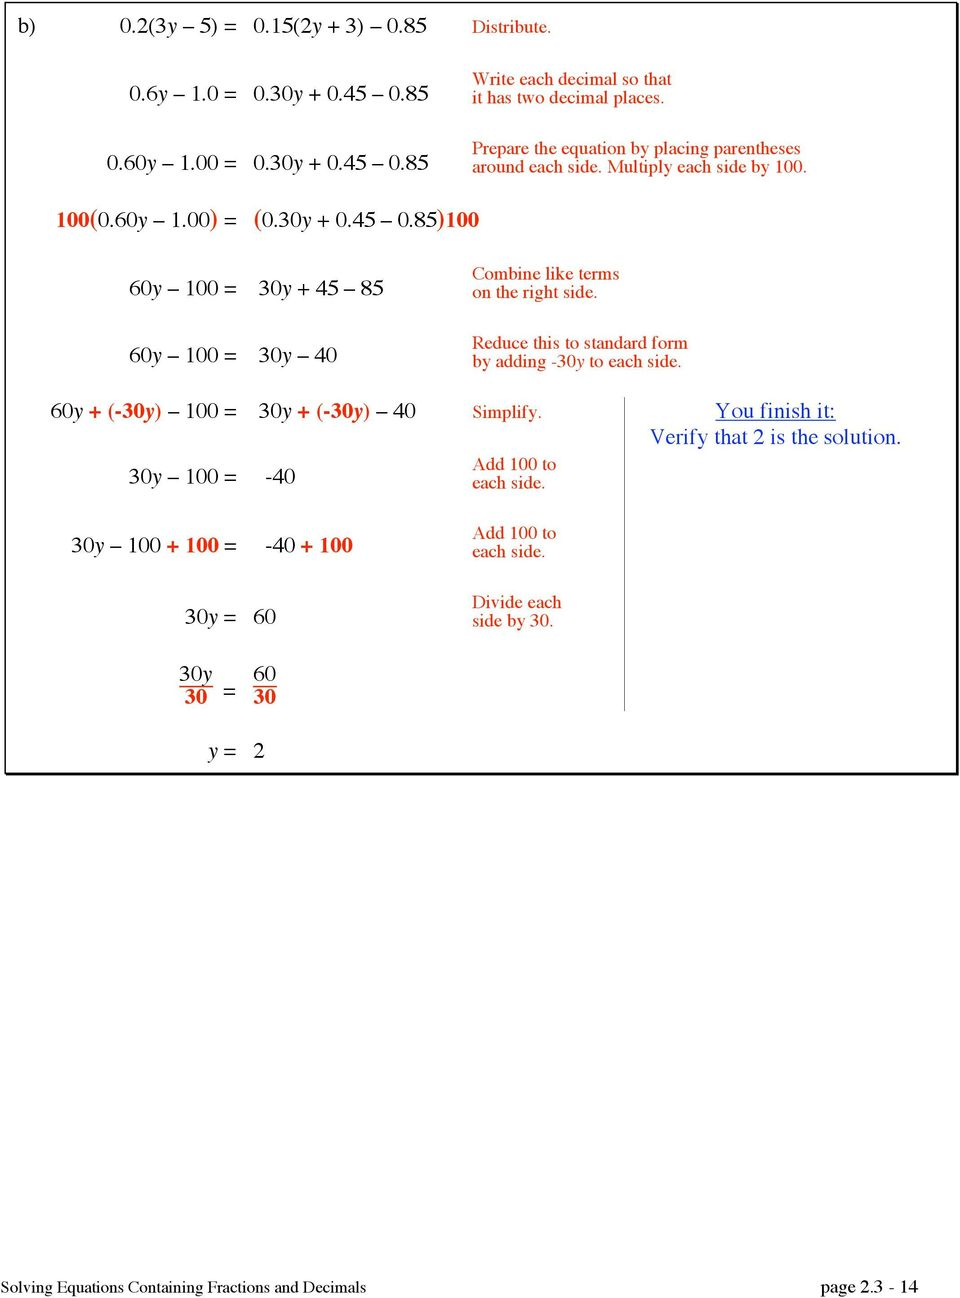 Combining like terms worksheet doc